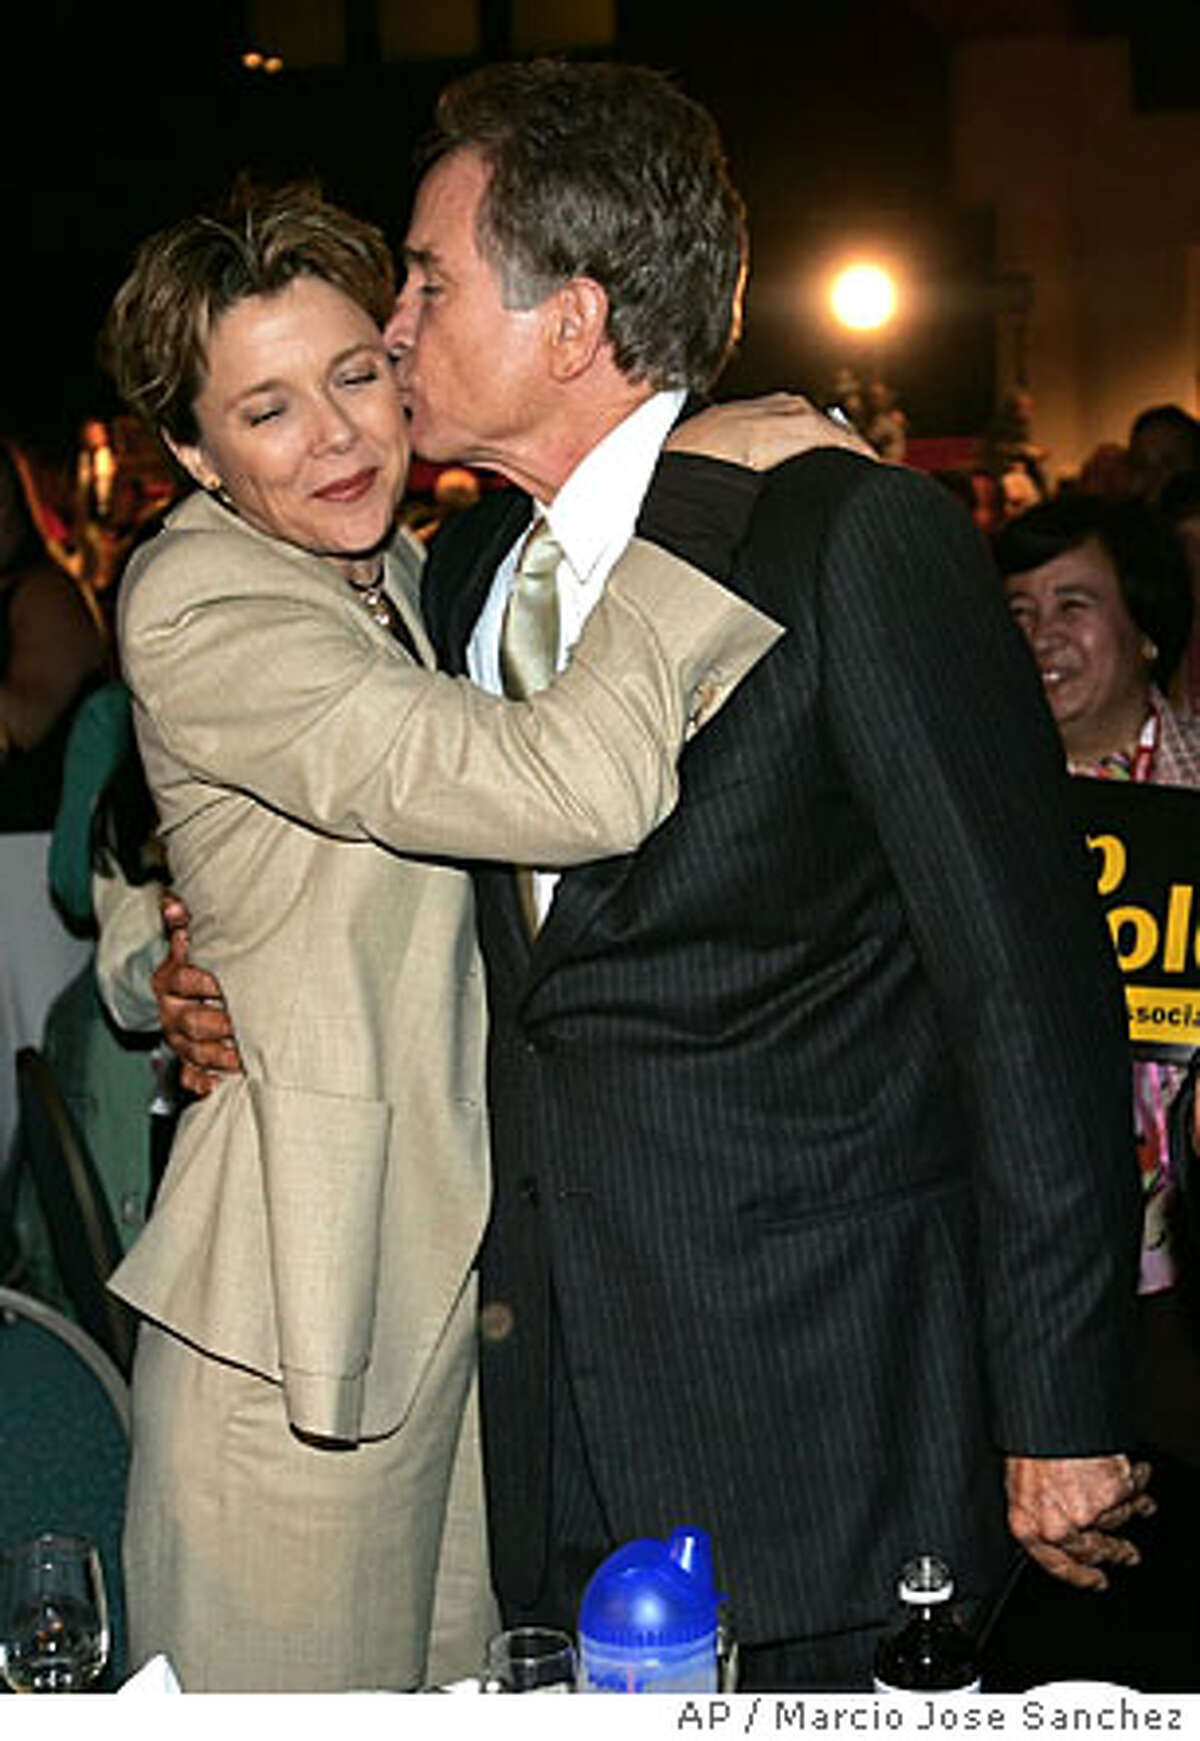 Actor Warren Beatty, right, kisses his wife actress Annette Benning after addresing members of the California Nurses Association on Thursday, Sept. 22 in Oakland, Calif. Beatty, a Democrat who has been mentioned as a possible challenger to Gov. Arnold Schwarzenegger next year, has in the past few months emerged as one of the governor's most visible and vociferous critics. (AP Photo/Marcio Jose Sanchez)